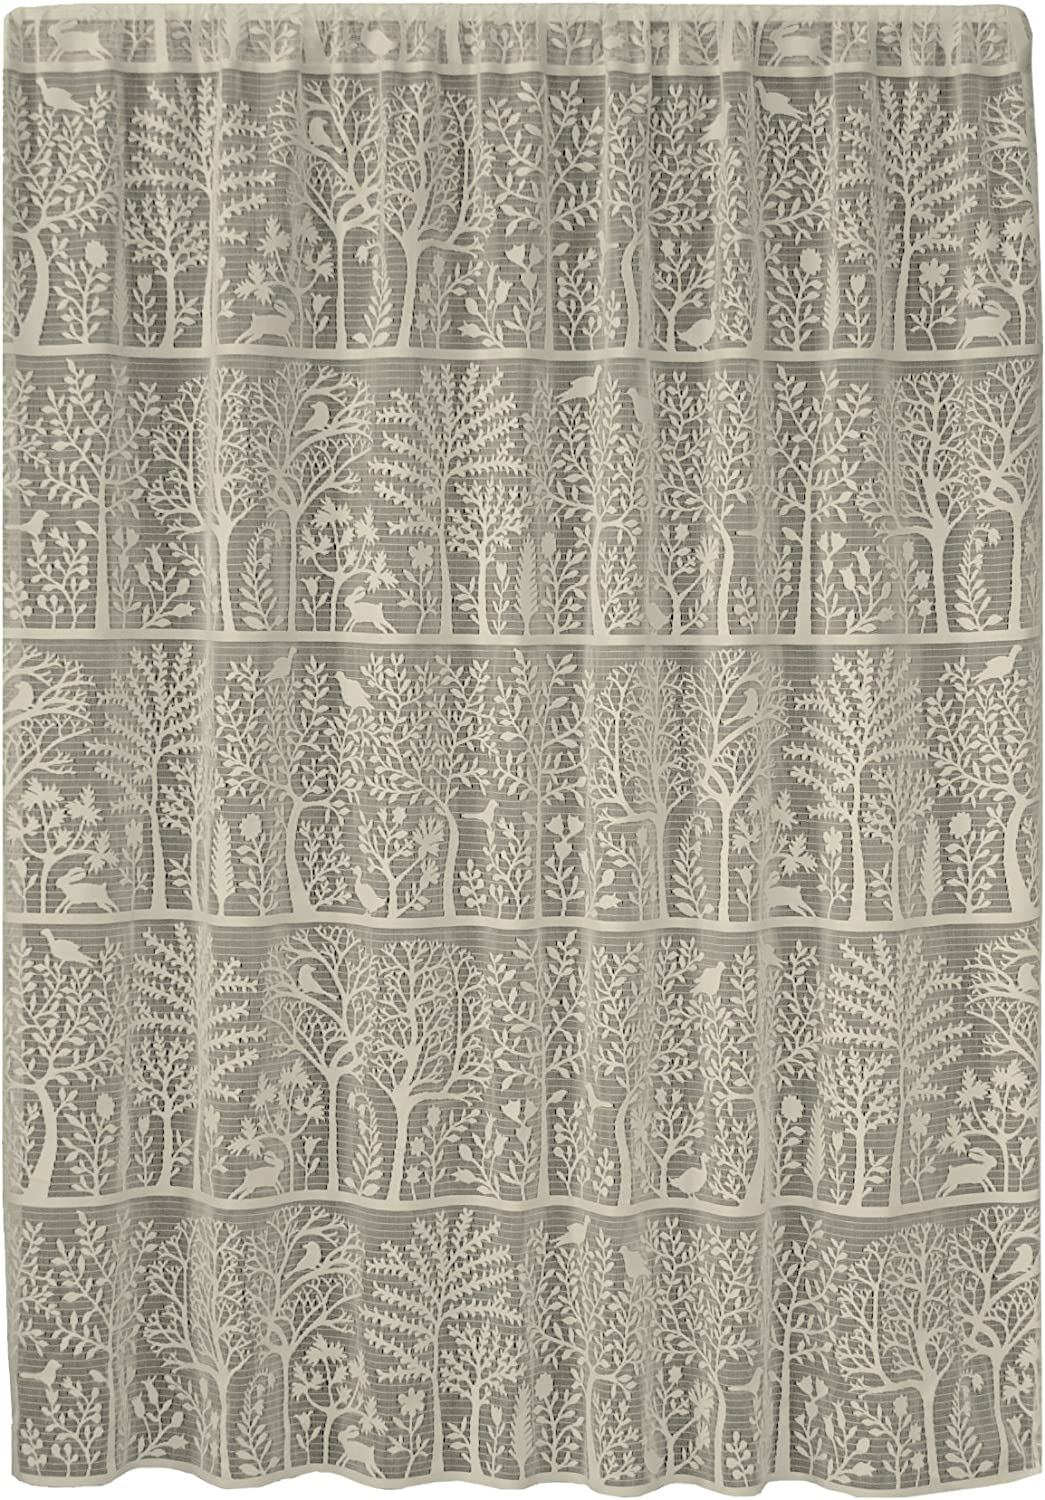 Heritage Lace Rabbit Hollow Panel, 60 by 63-Inch, Cafè